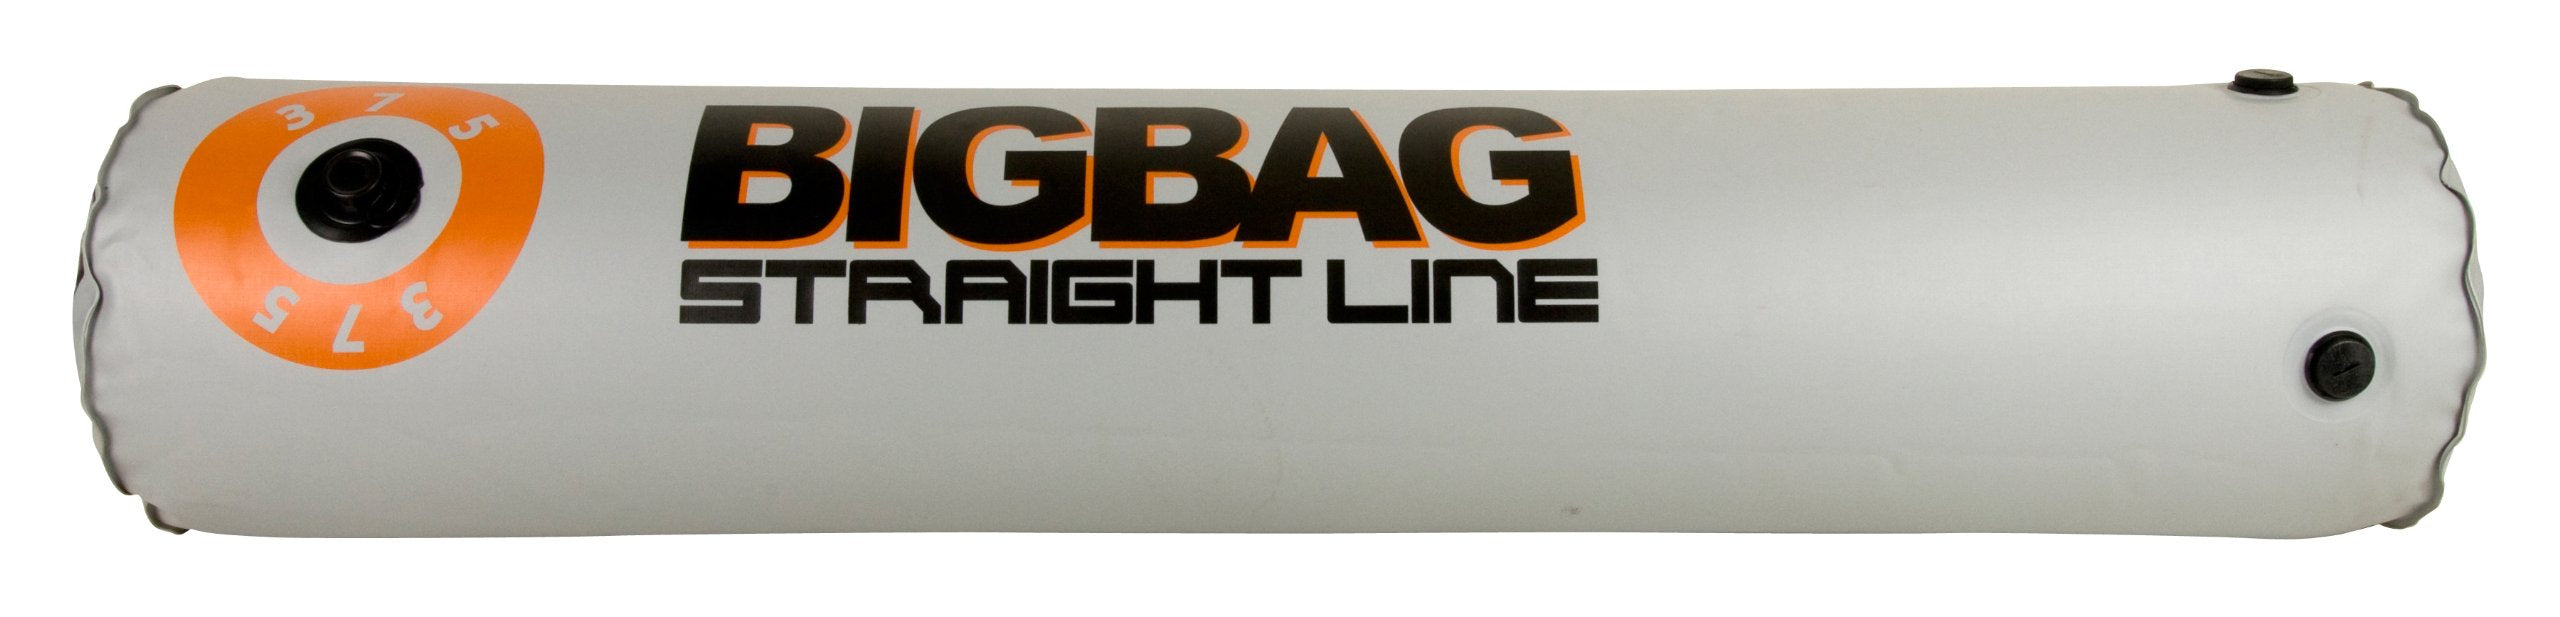 Straightline Sumo Big Bag 375 pounds. Single Ballast Bag (2018)